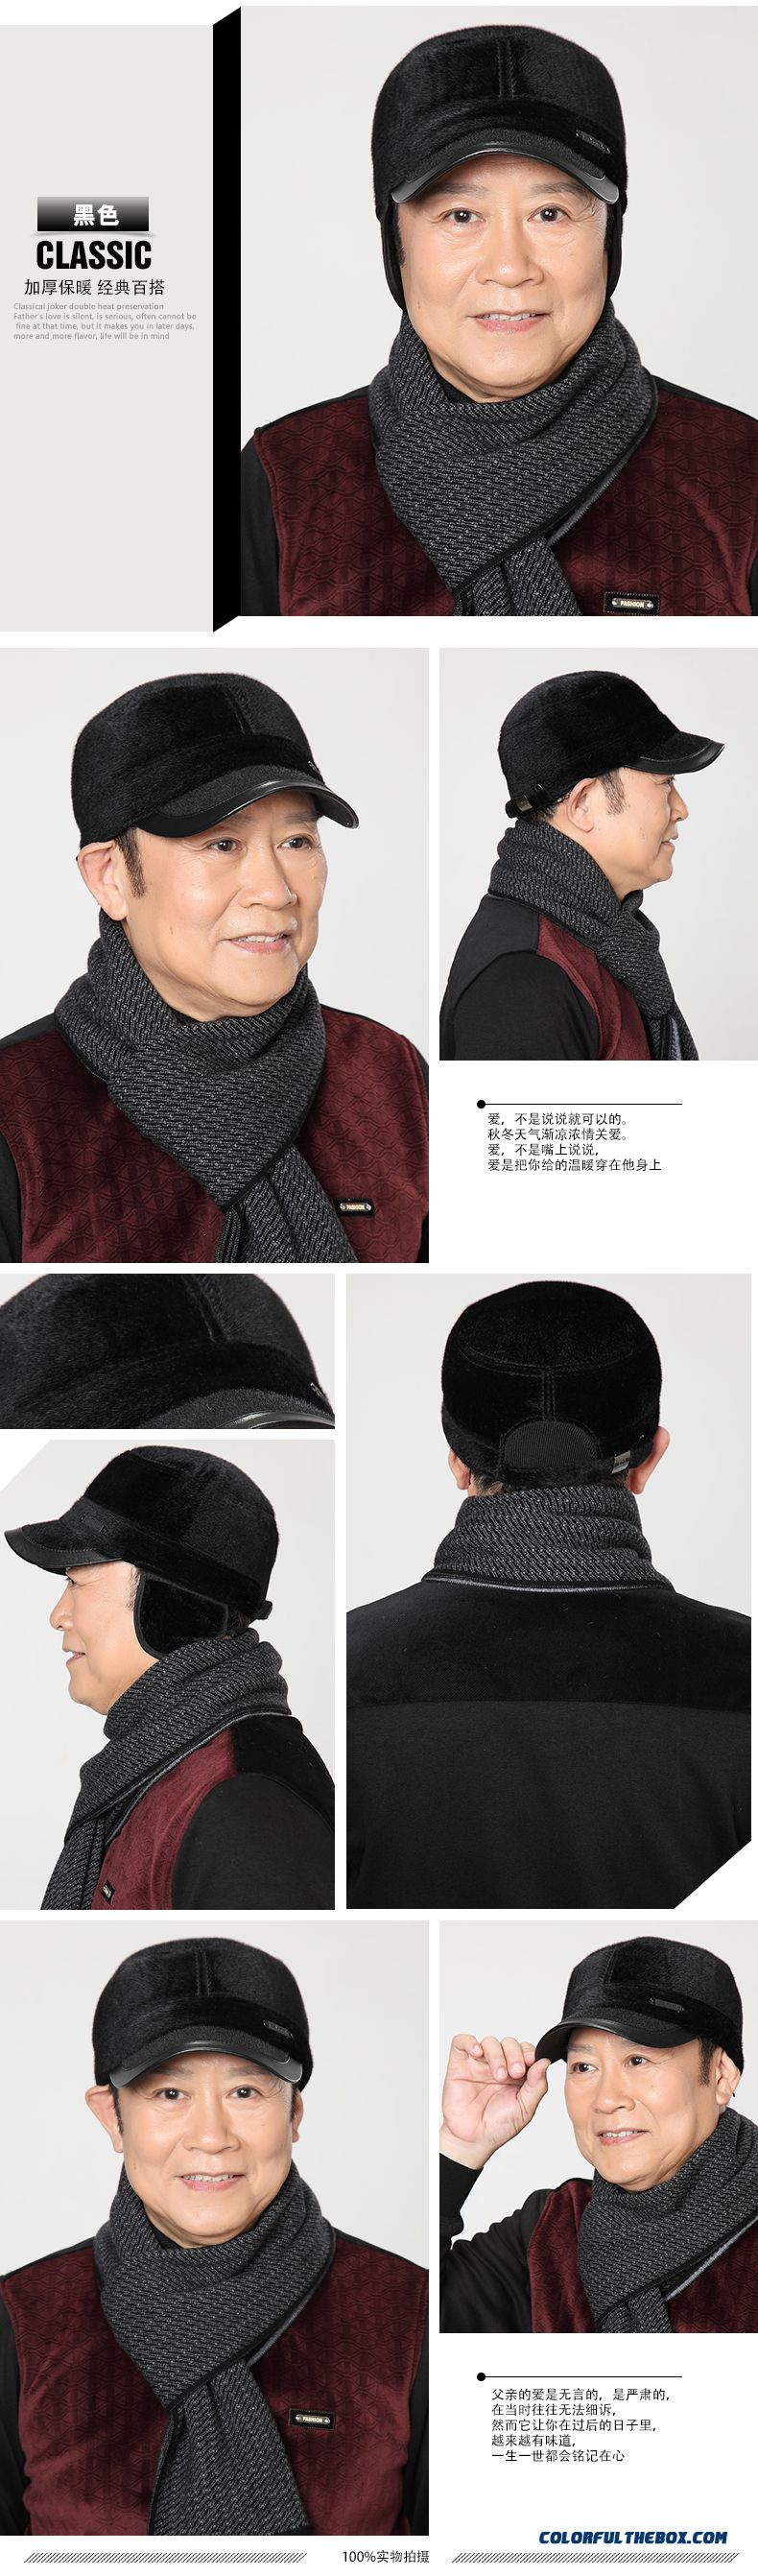 2df719f377b86 ... Middle-aged Men s Winter Hats Short-brimmed Hat Woolen Flat Cap Winter  Warm Accessories ...